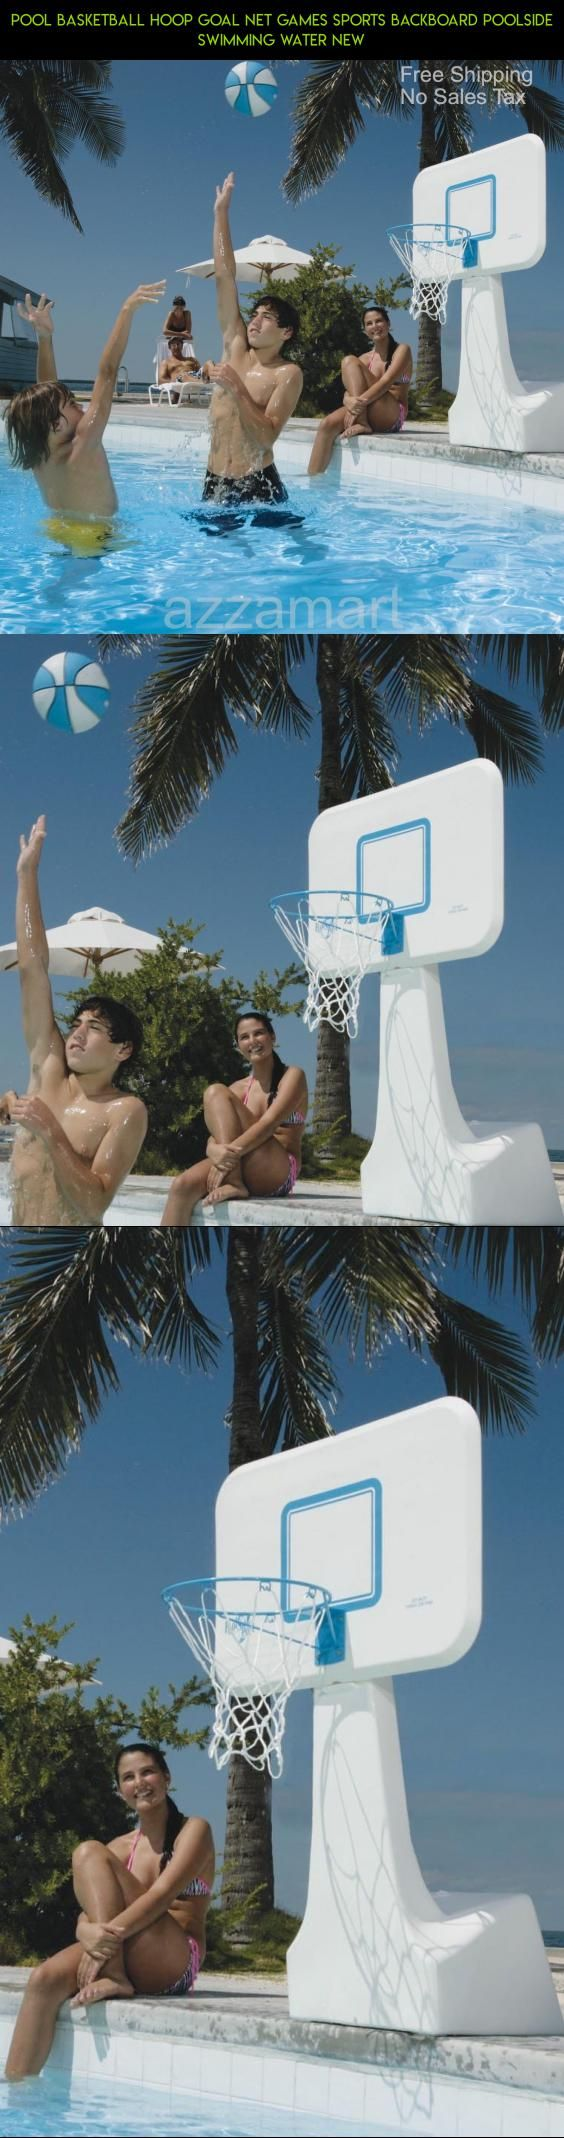 Pool Basketball Hoop Goal Net Games Sports Backboard Poolside Swimming Water New #products #hoop #camera #gadgets #plans #kit #fpv #racing #basketball #poolside #drone #technology #parts #tech #shopping